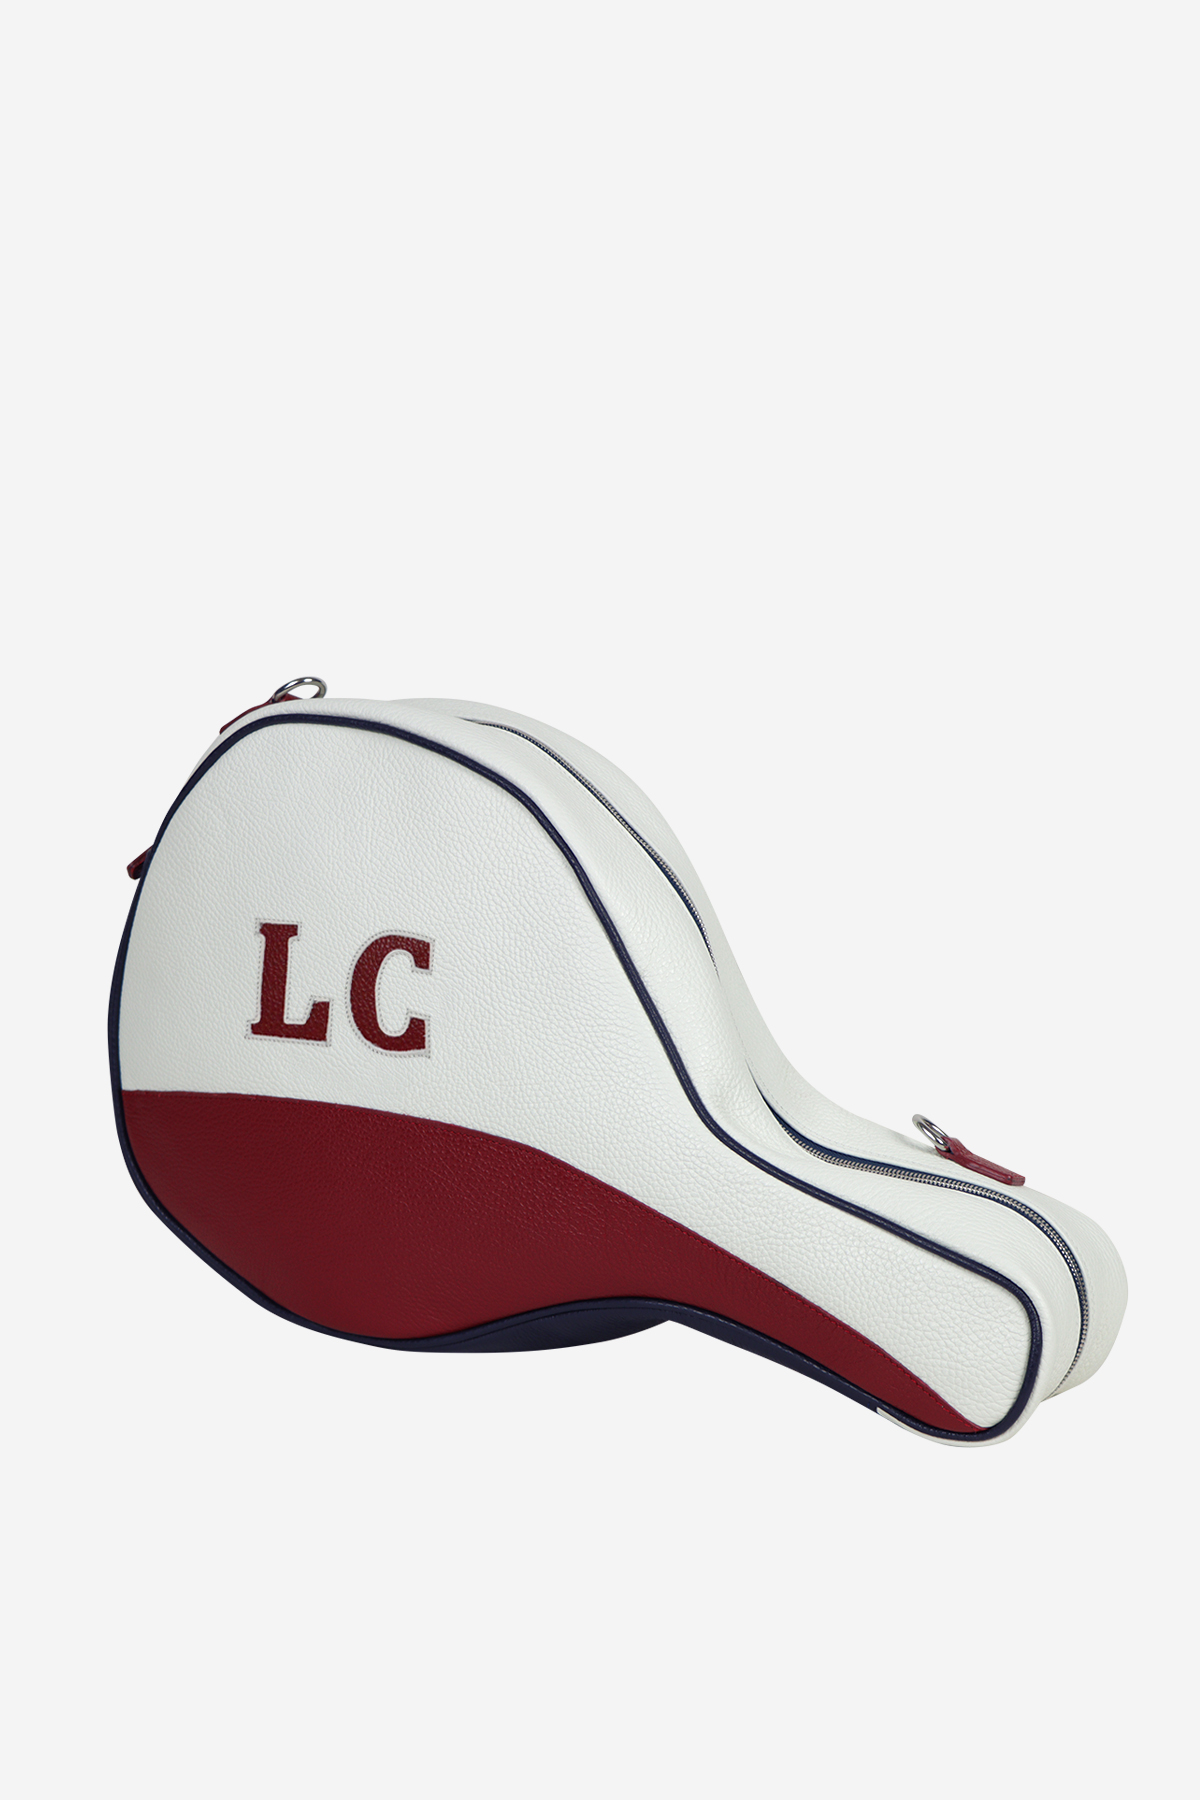 Original Padel Bag front side waterproof leather white red blue